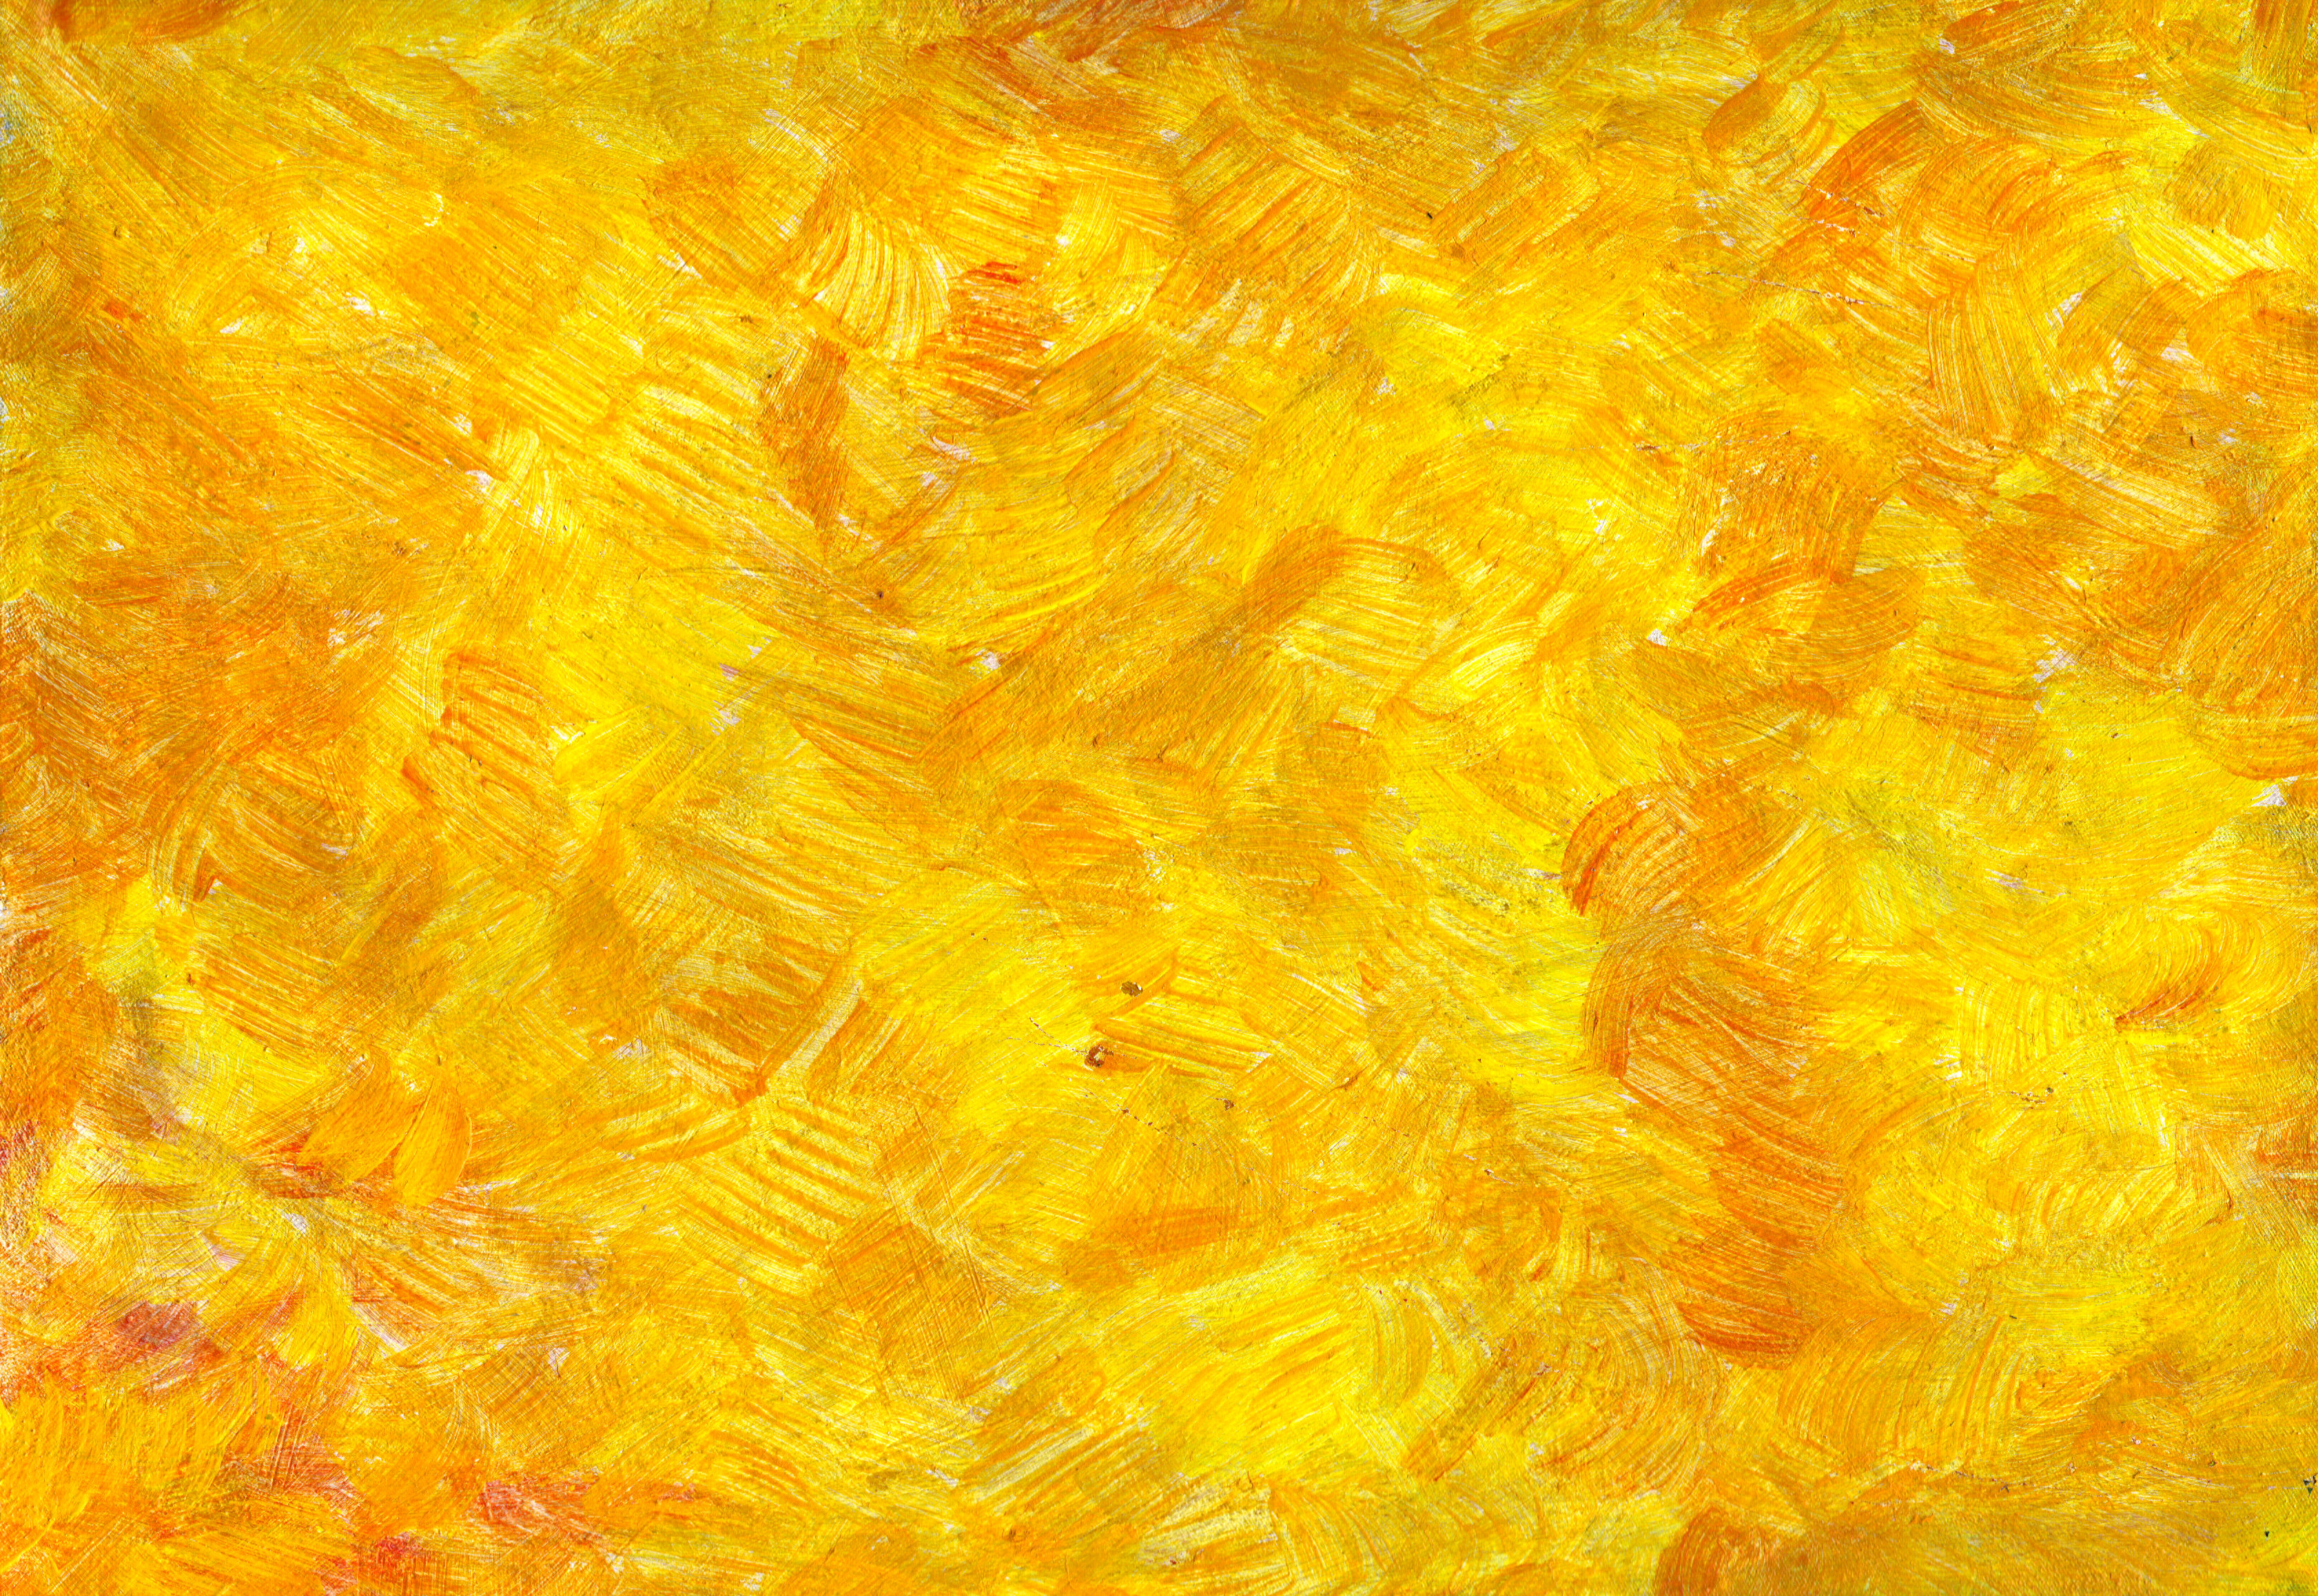 yellow orange paint texture jpg